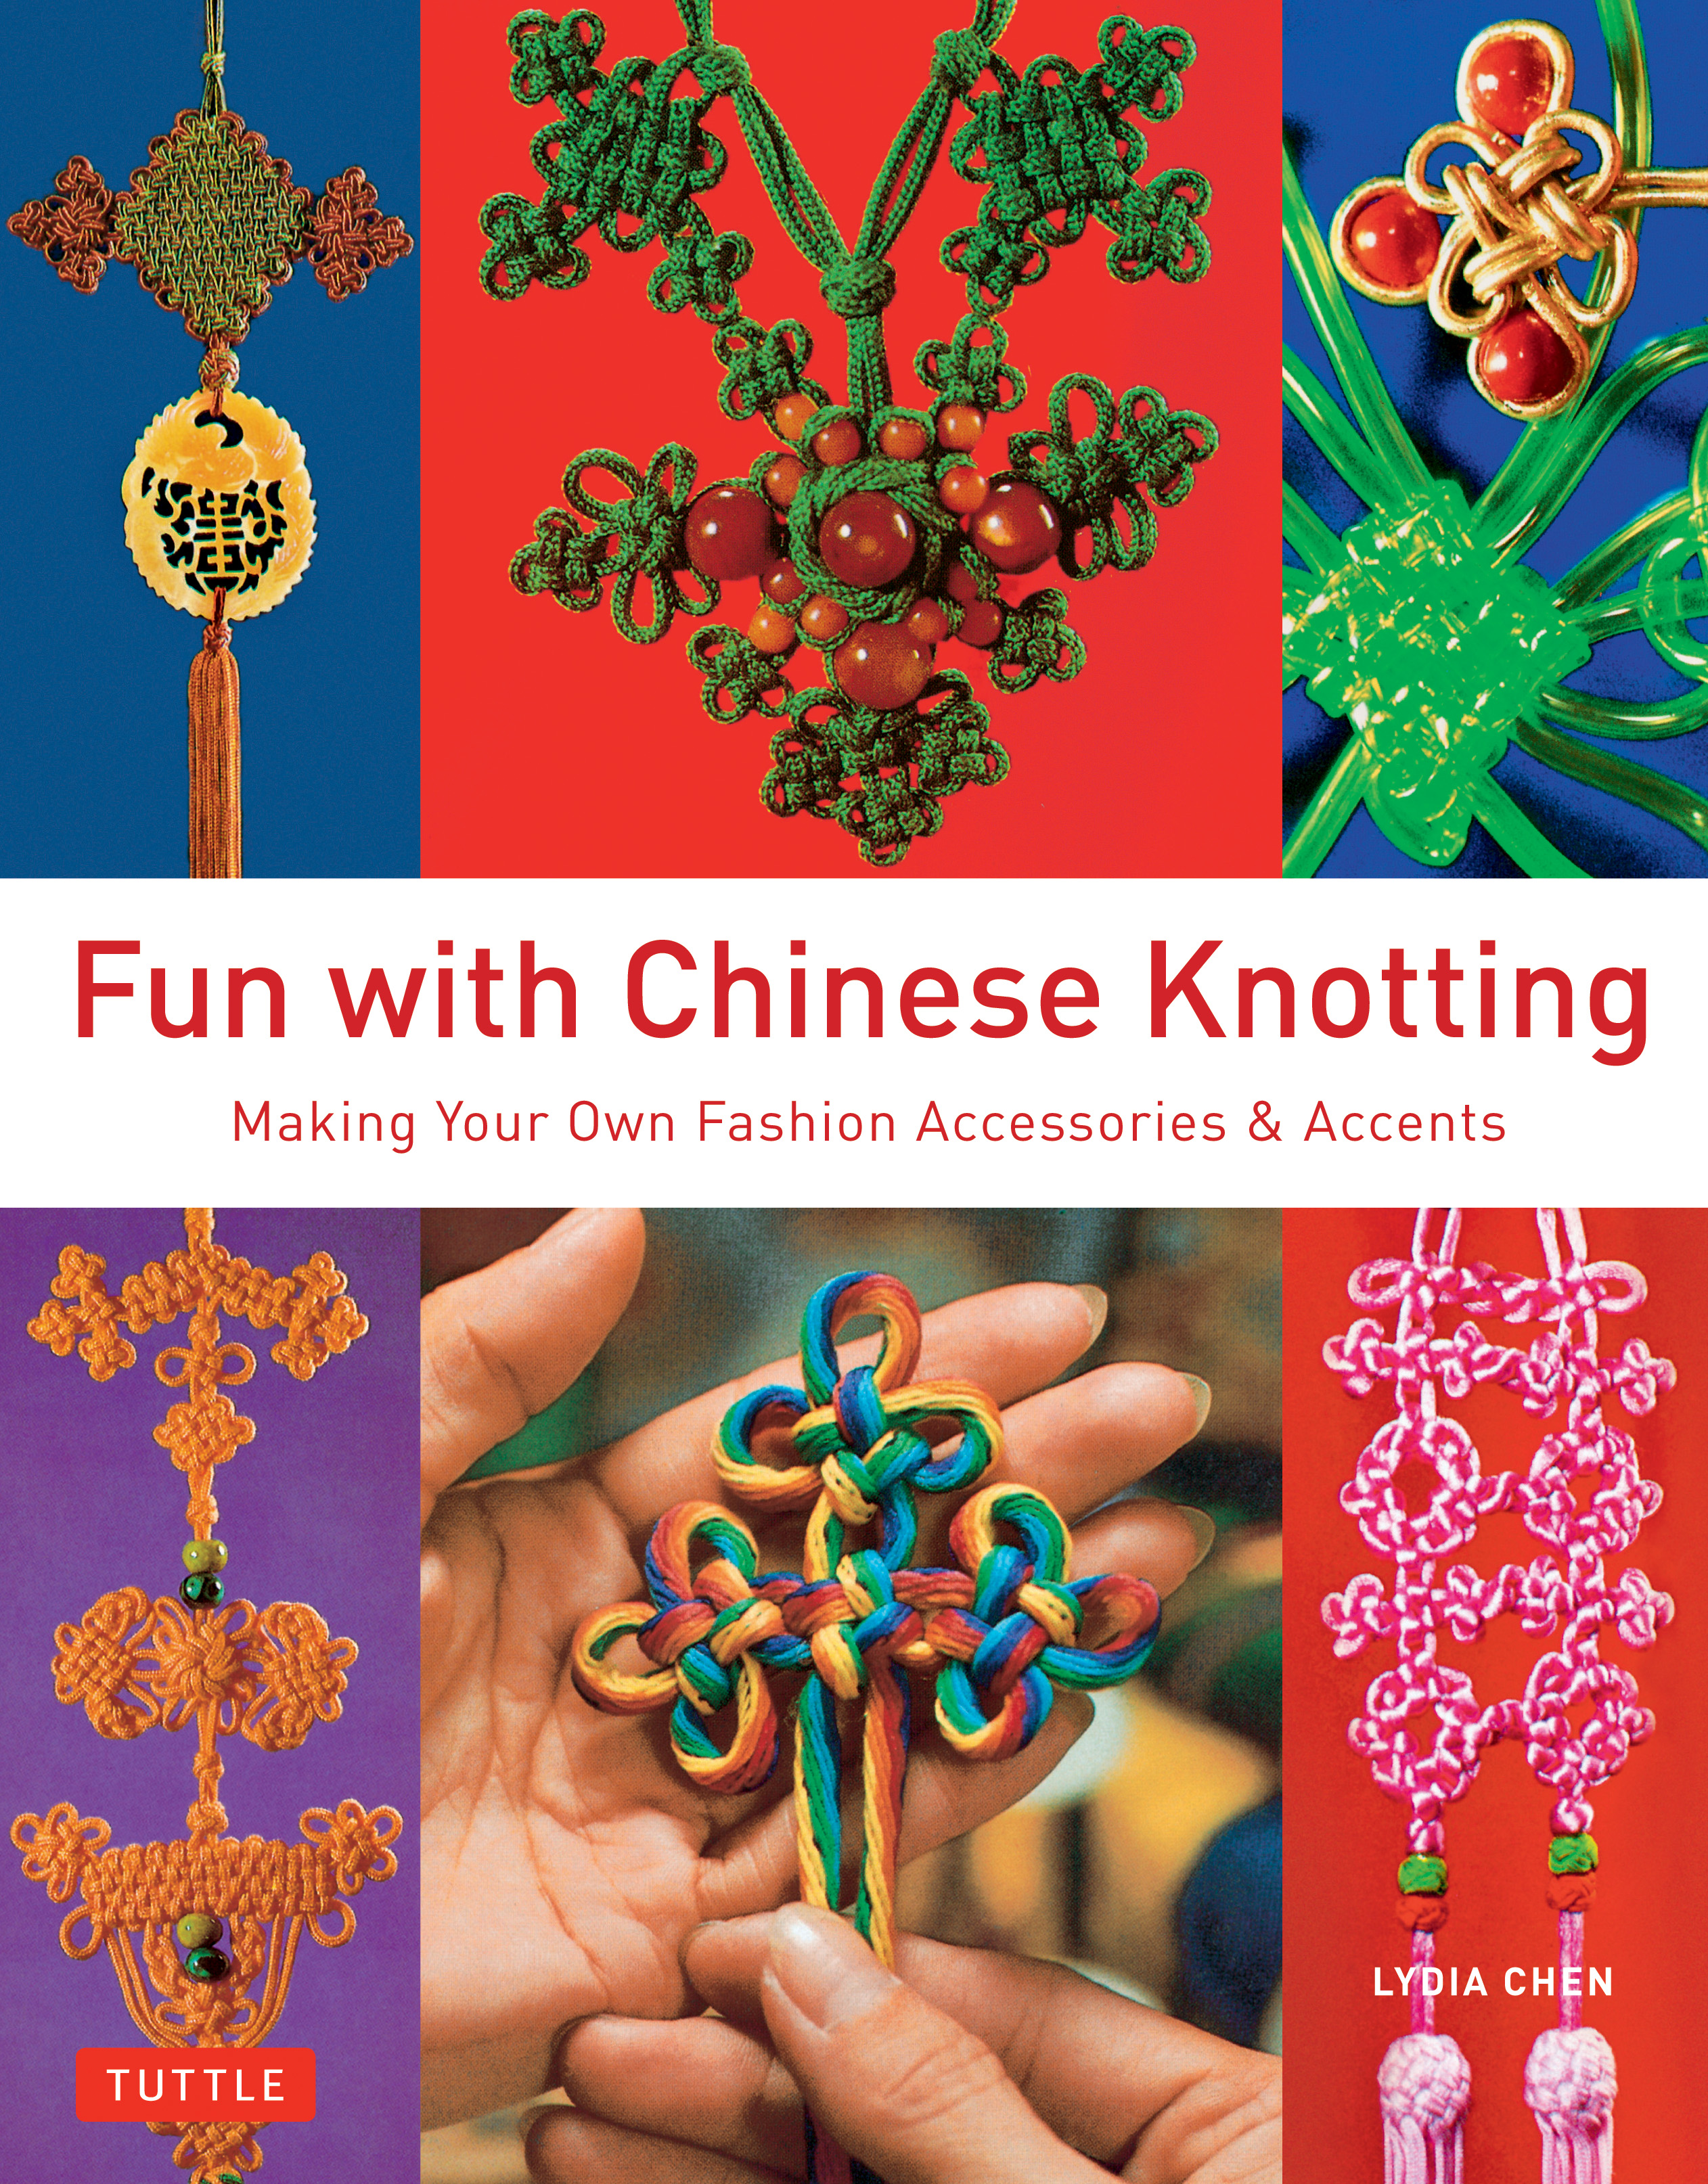 Fun-with-chinese-knotting-9780804844062_hr